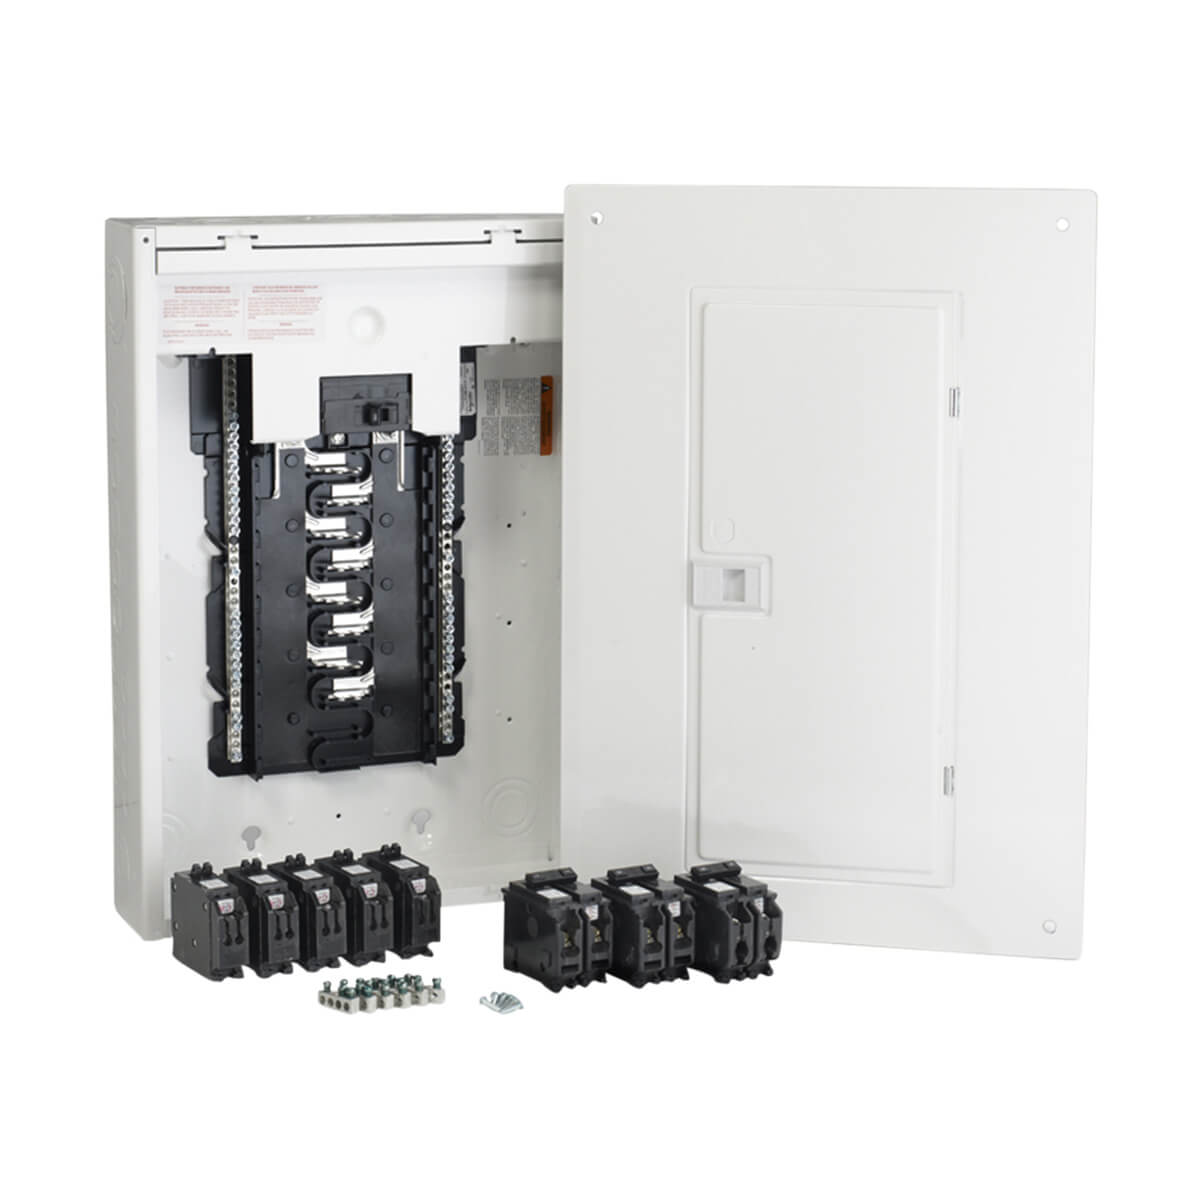 Schneider Electric 100 Amp 32 Circuit Homeline Panel Package with Breakers